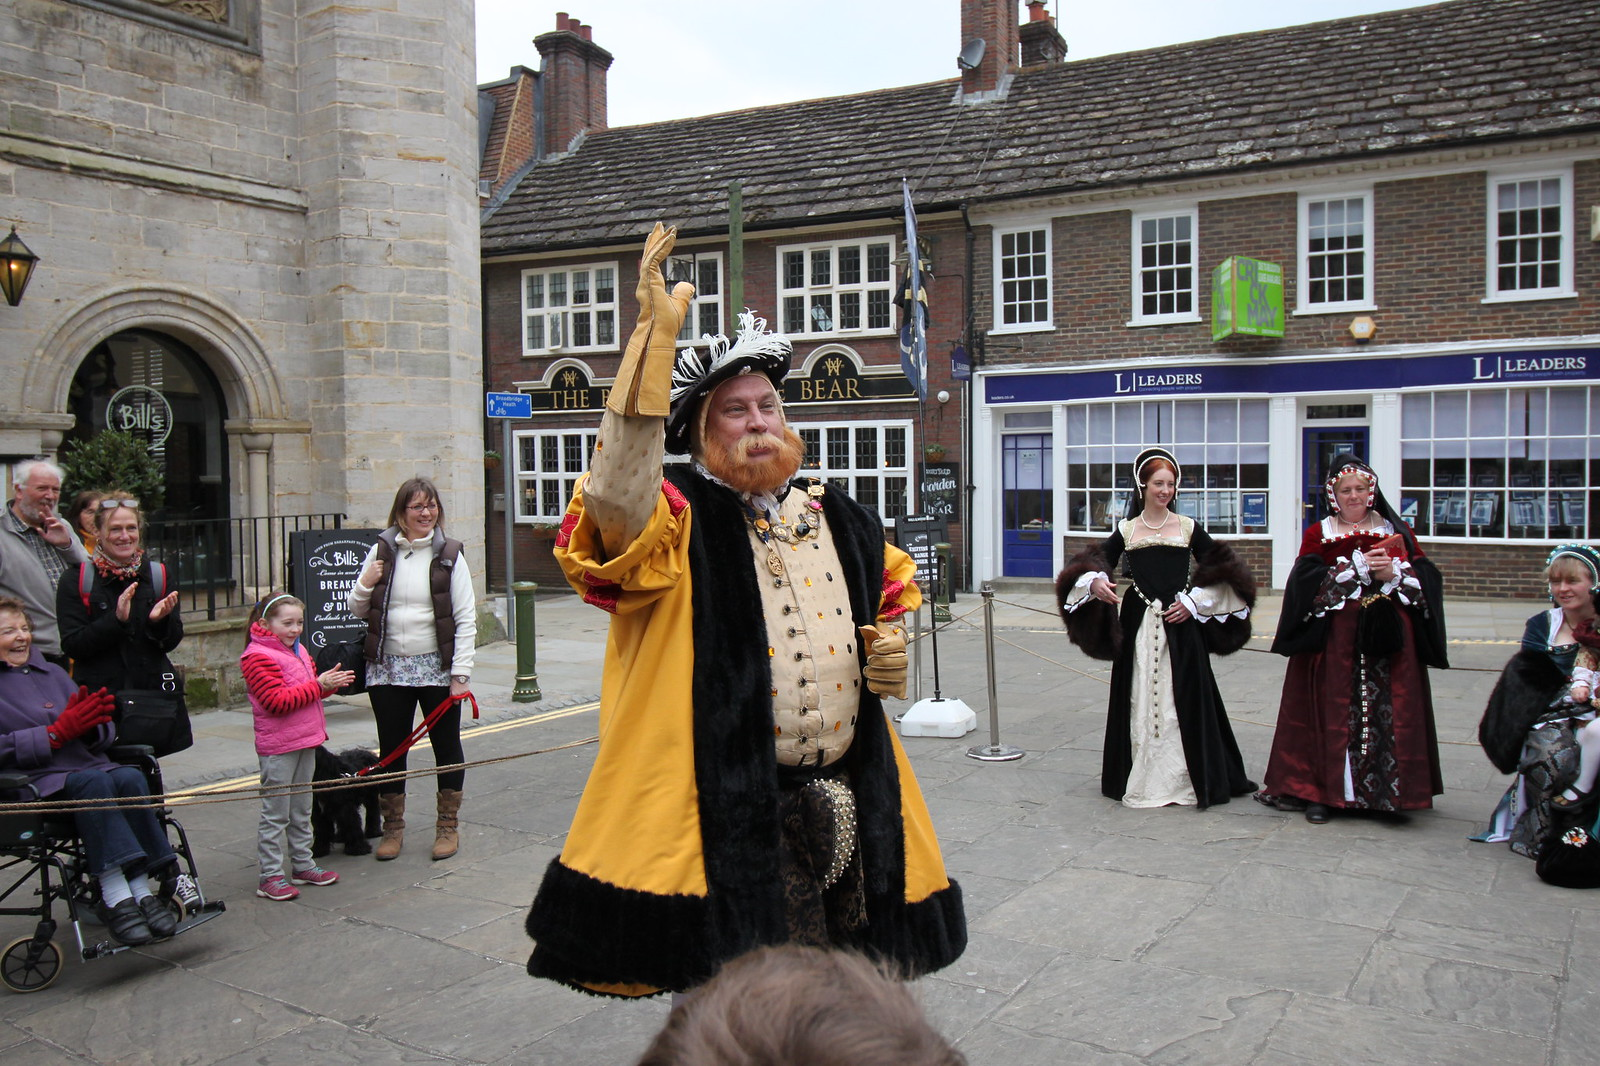 Henry VIII by Tony the Compere